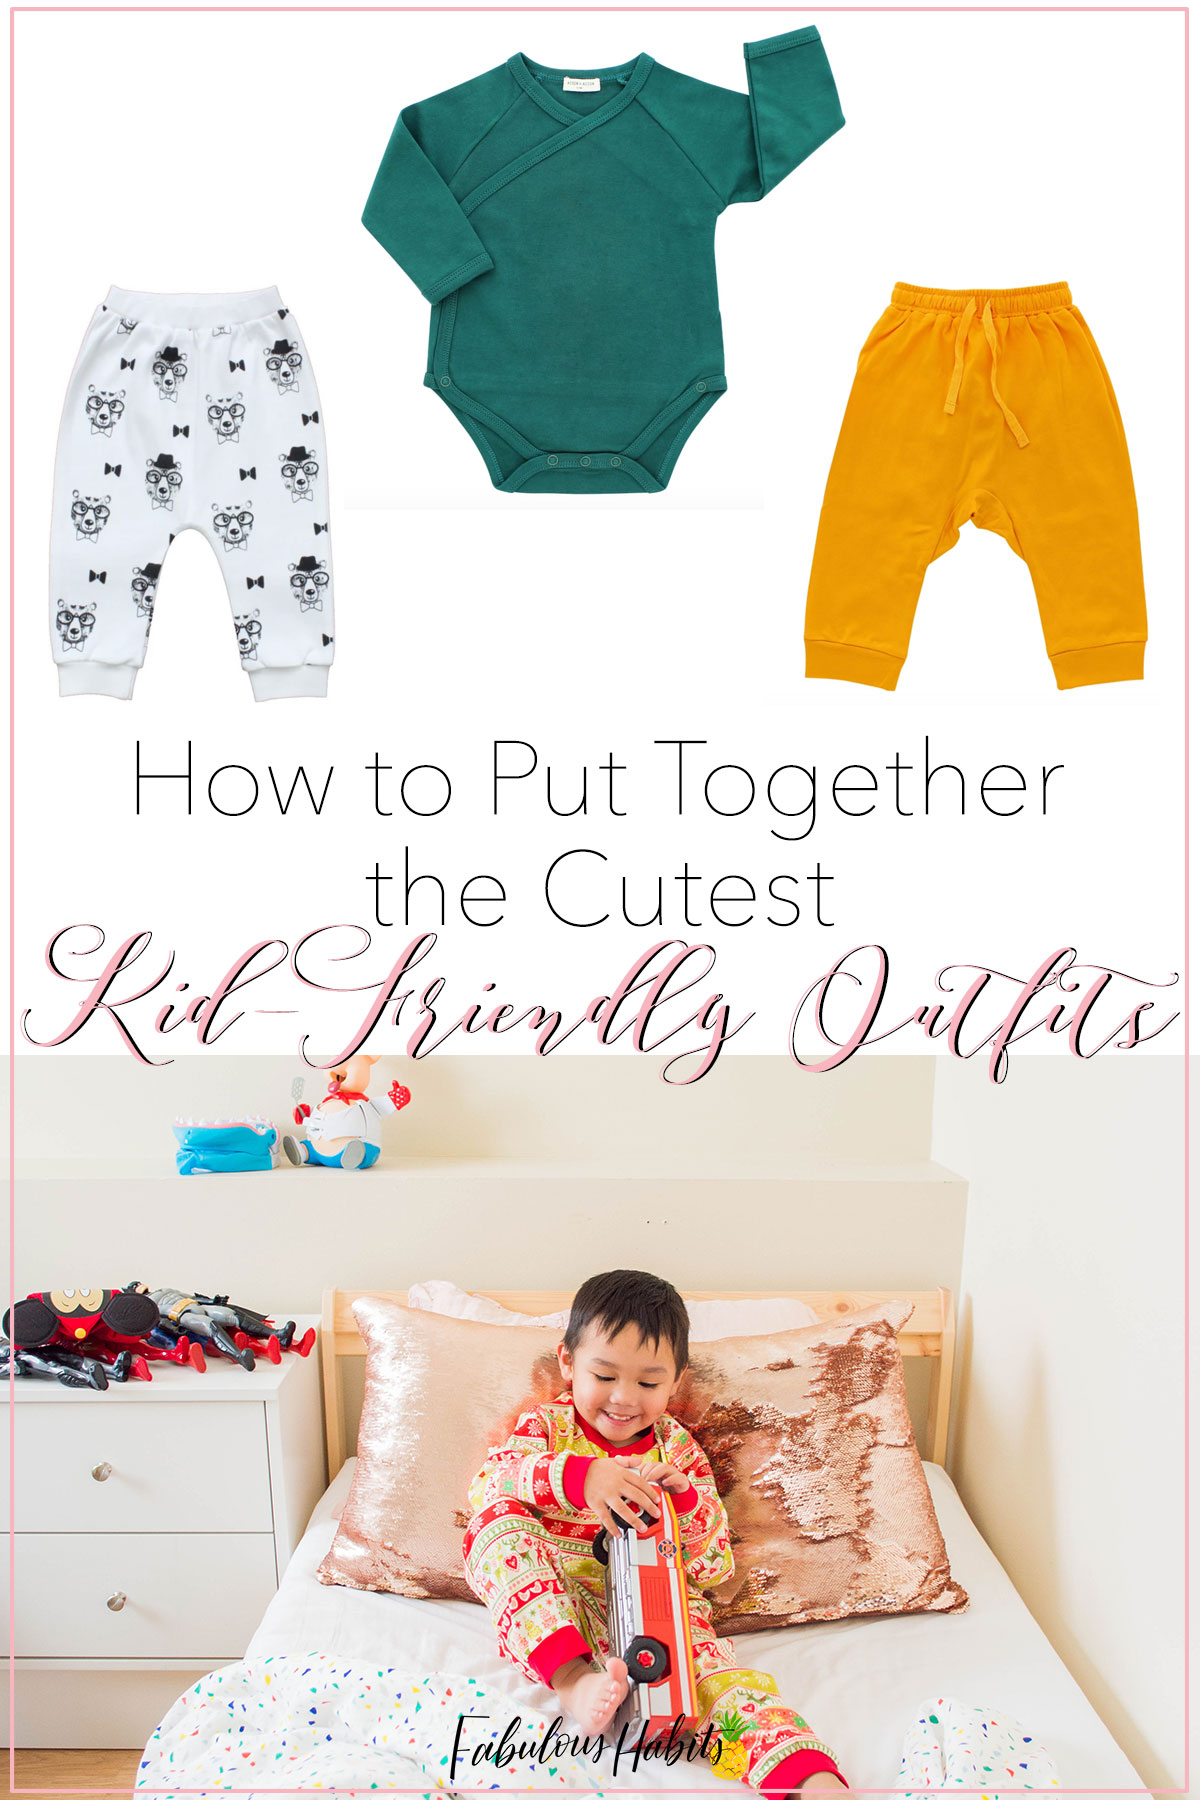 Need some help for gift ideas for your little one? In this gift guide, I'm highlighting all the ways you can build the cutest baby outfits with fashionable pieces that make great gifts! #holidaygiftguide